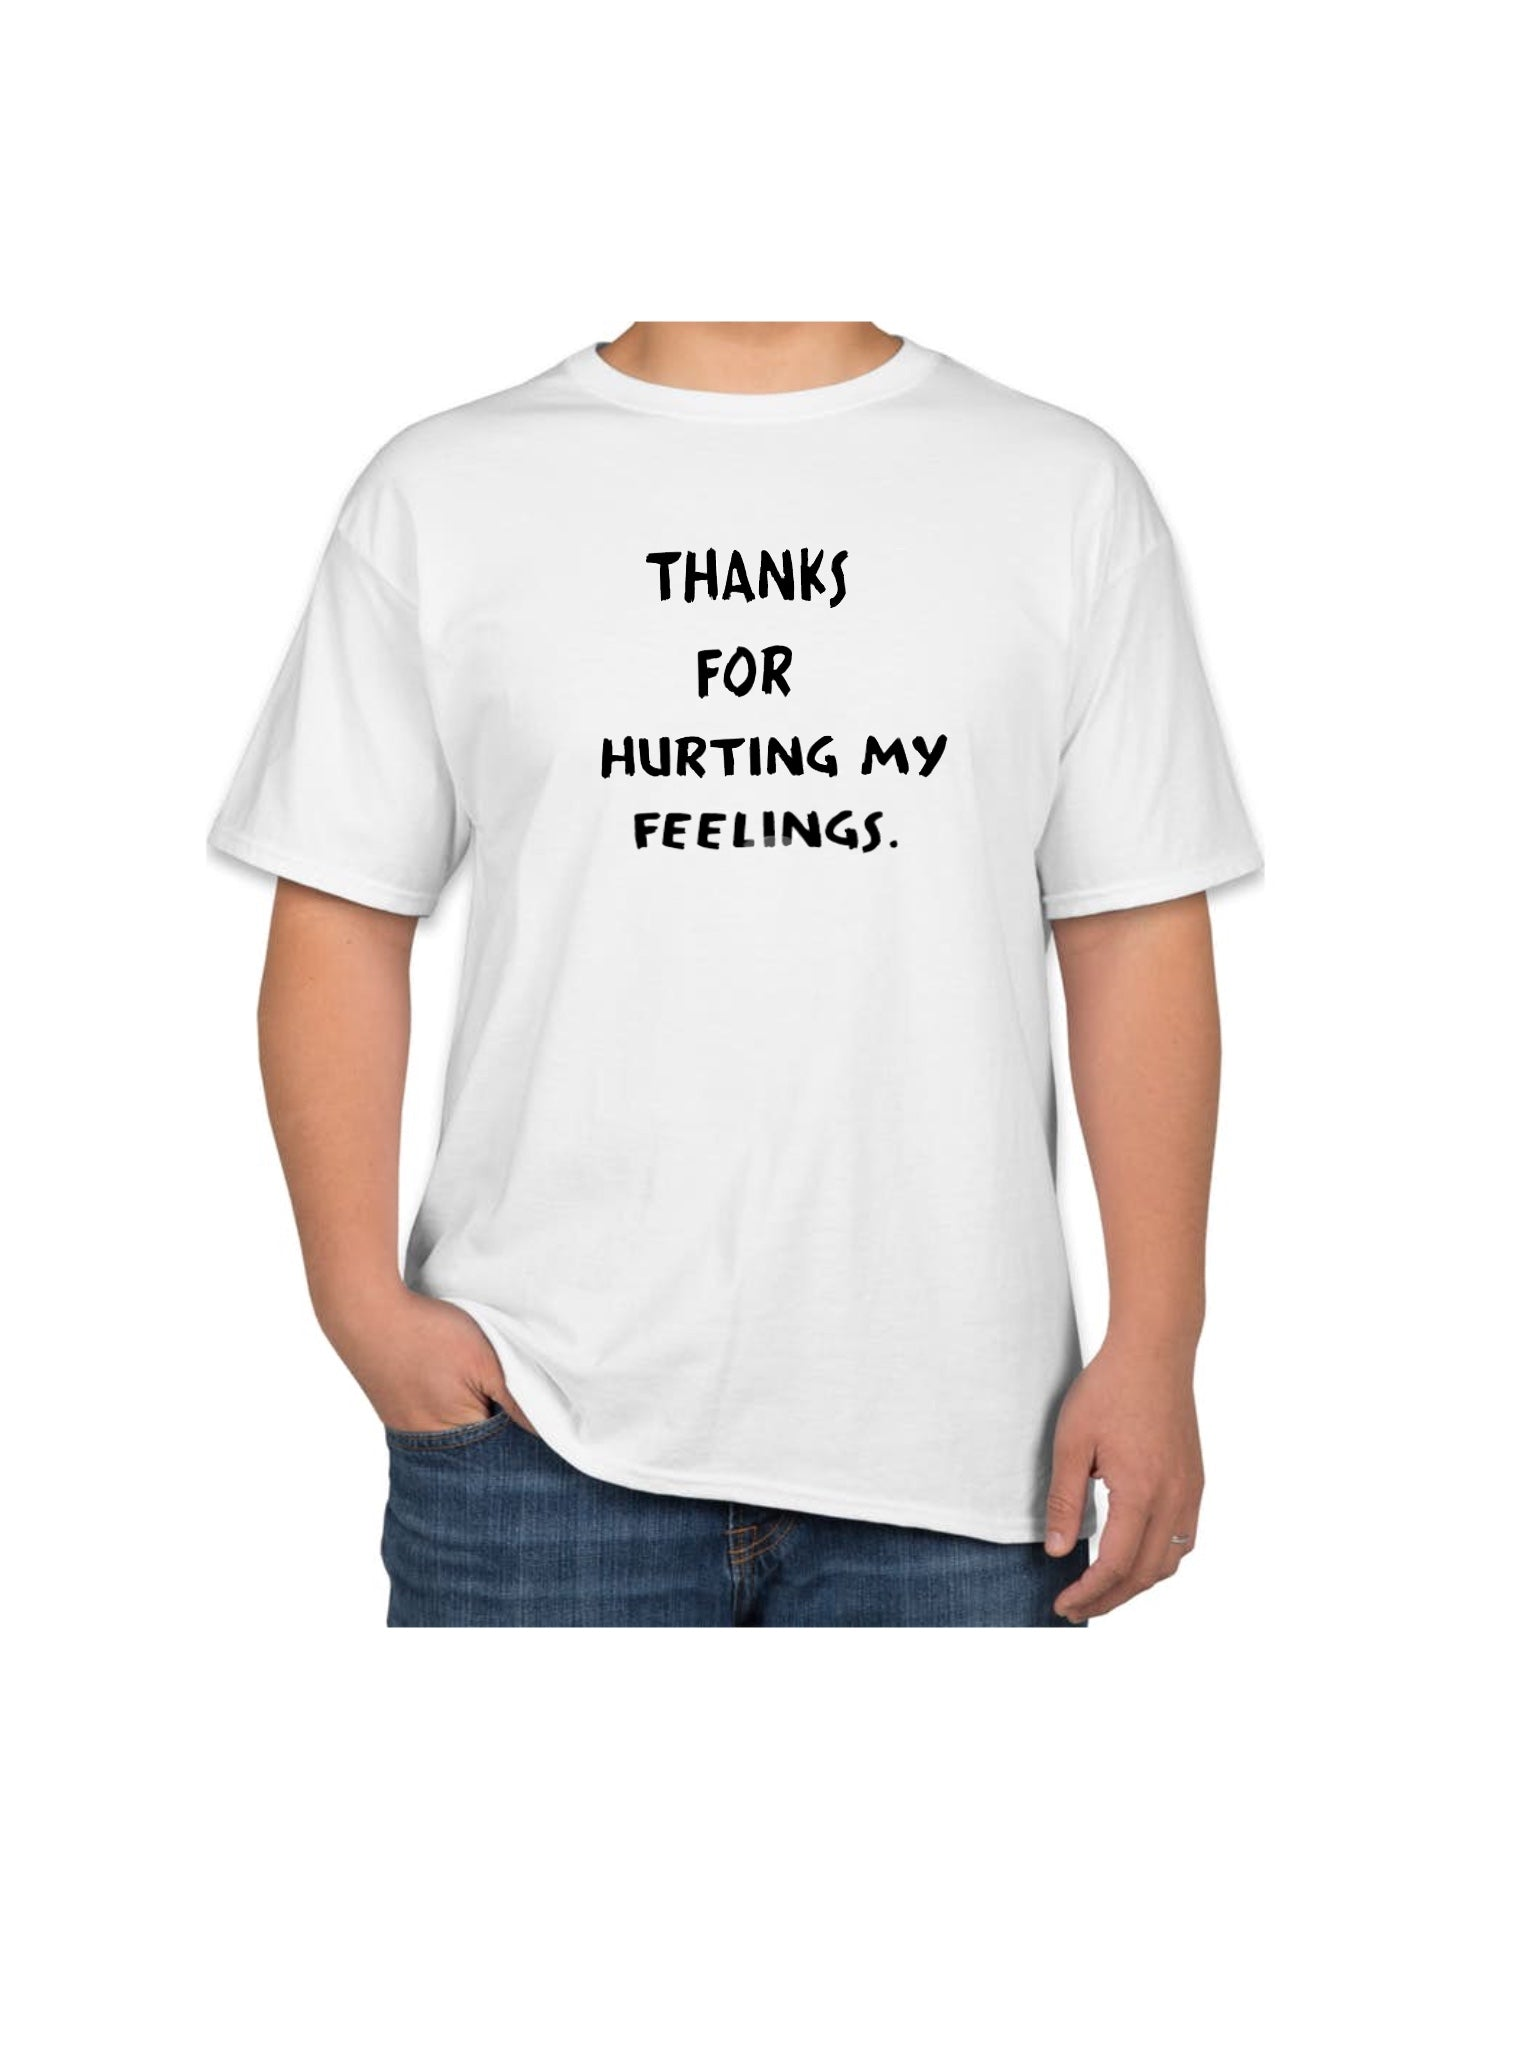 Thanks for hurting my feelings Tee